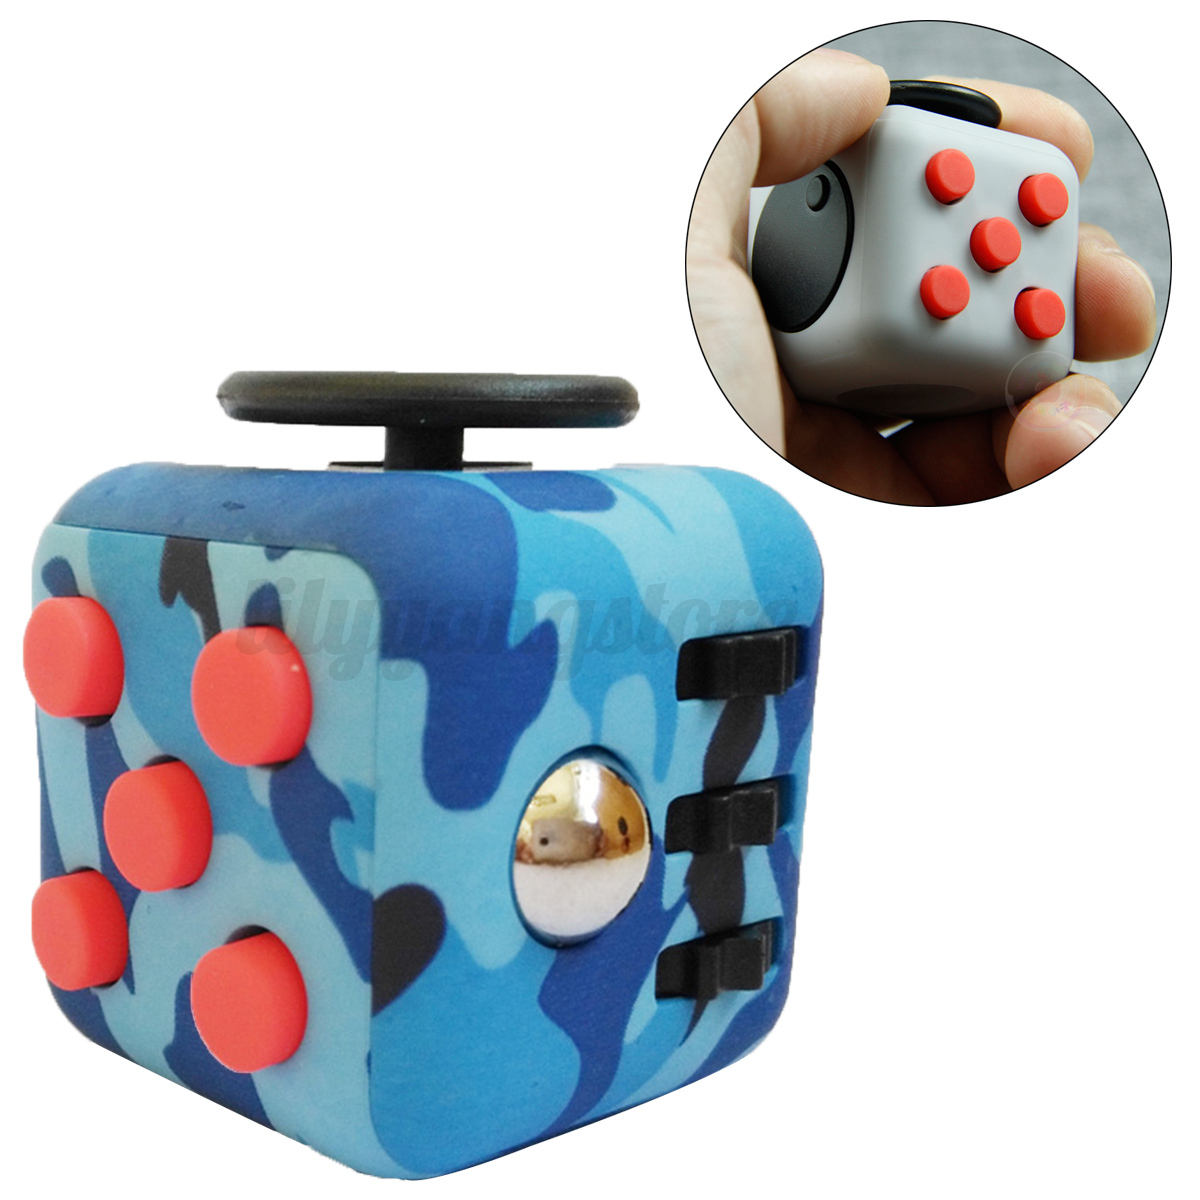 Toys For Adults For Stress : New fidget anxiety stress relief cube focus adults kids